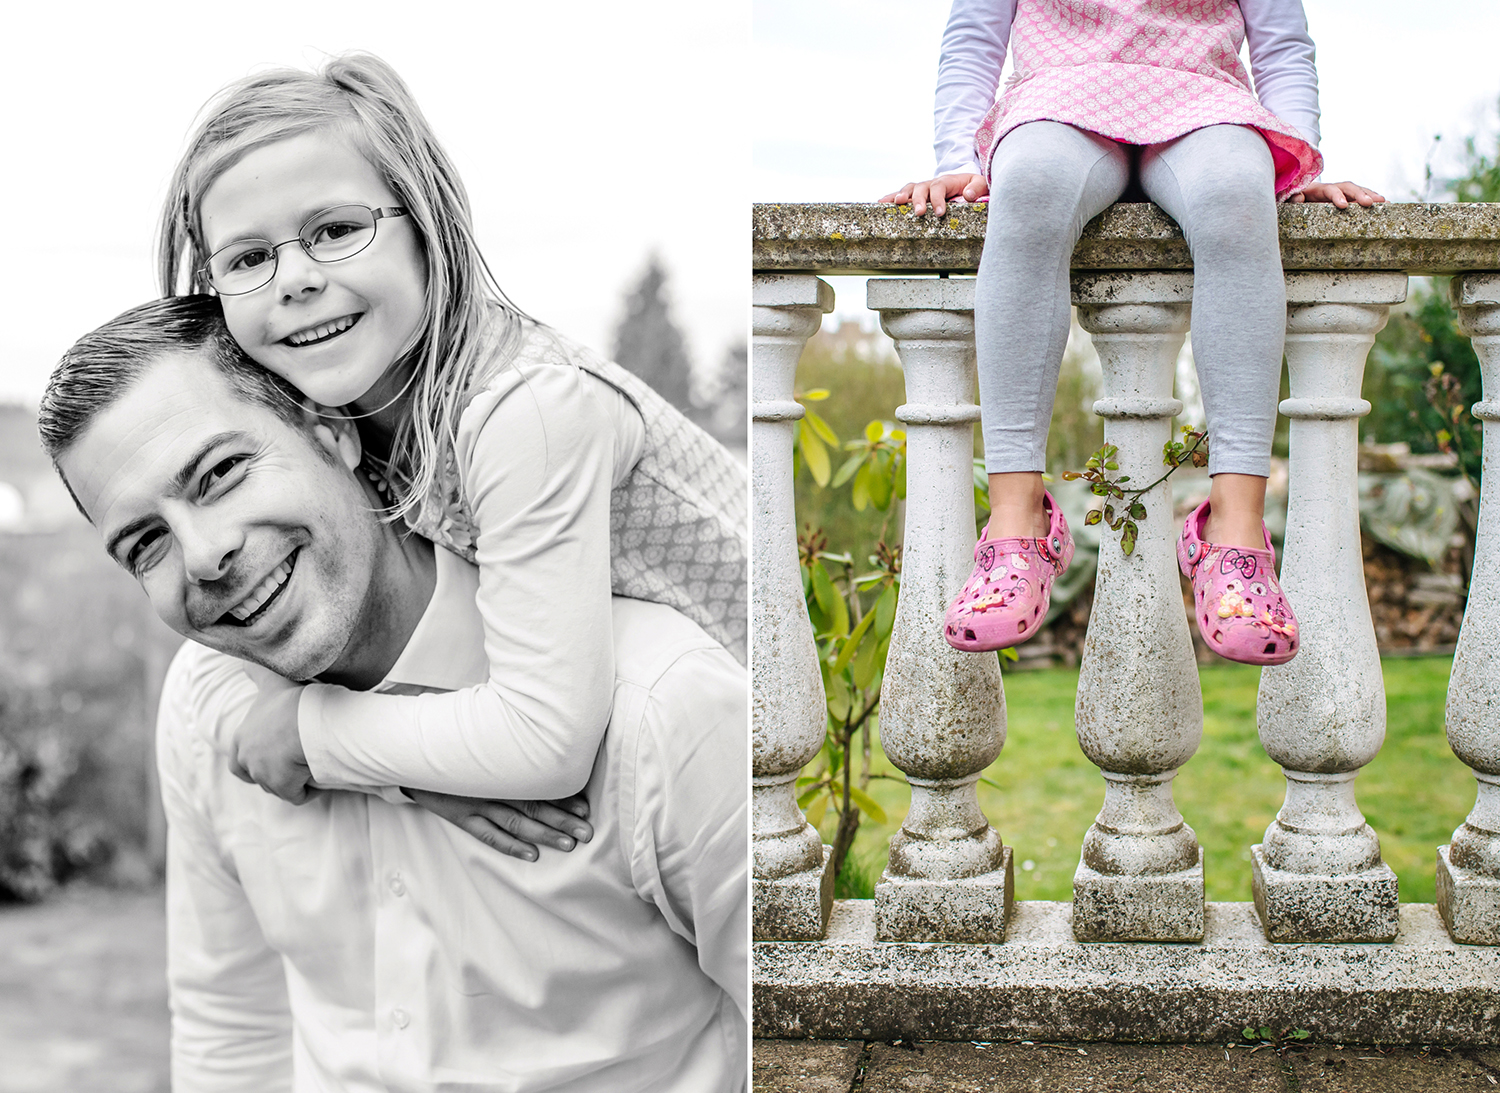 vater-tochter-fotoshooting